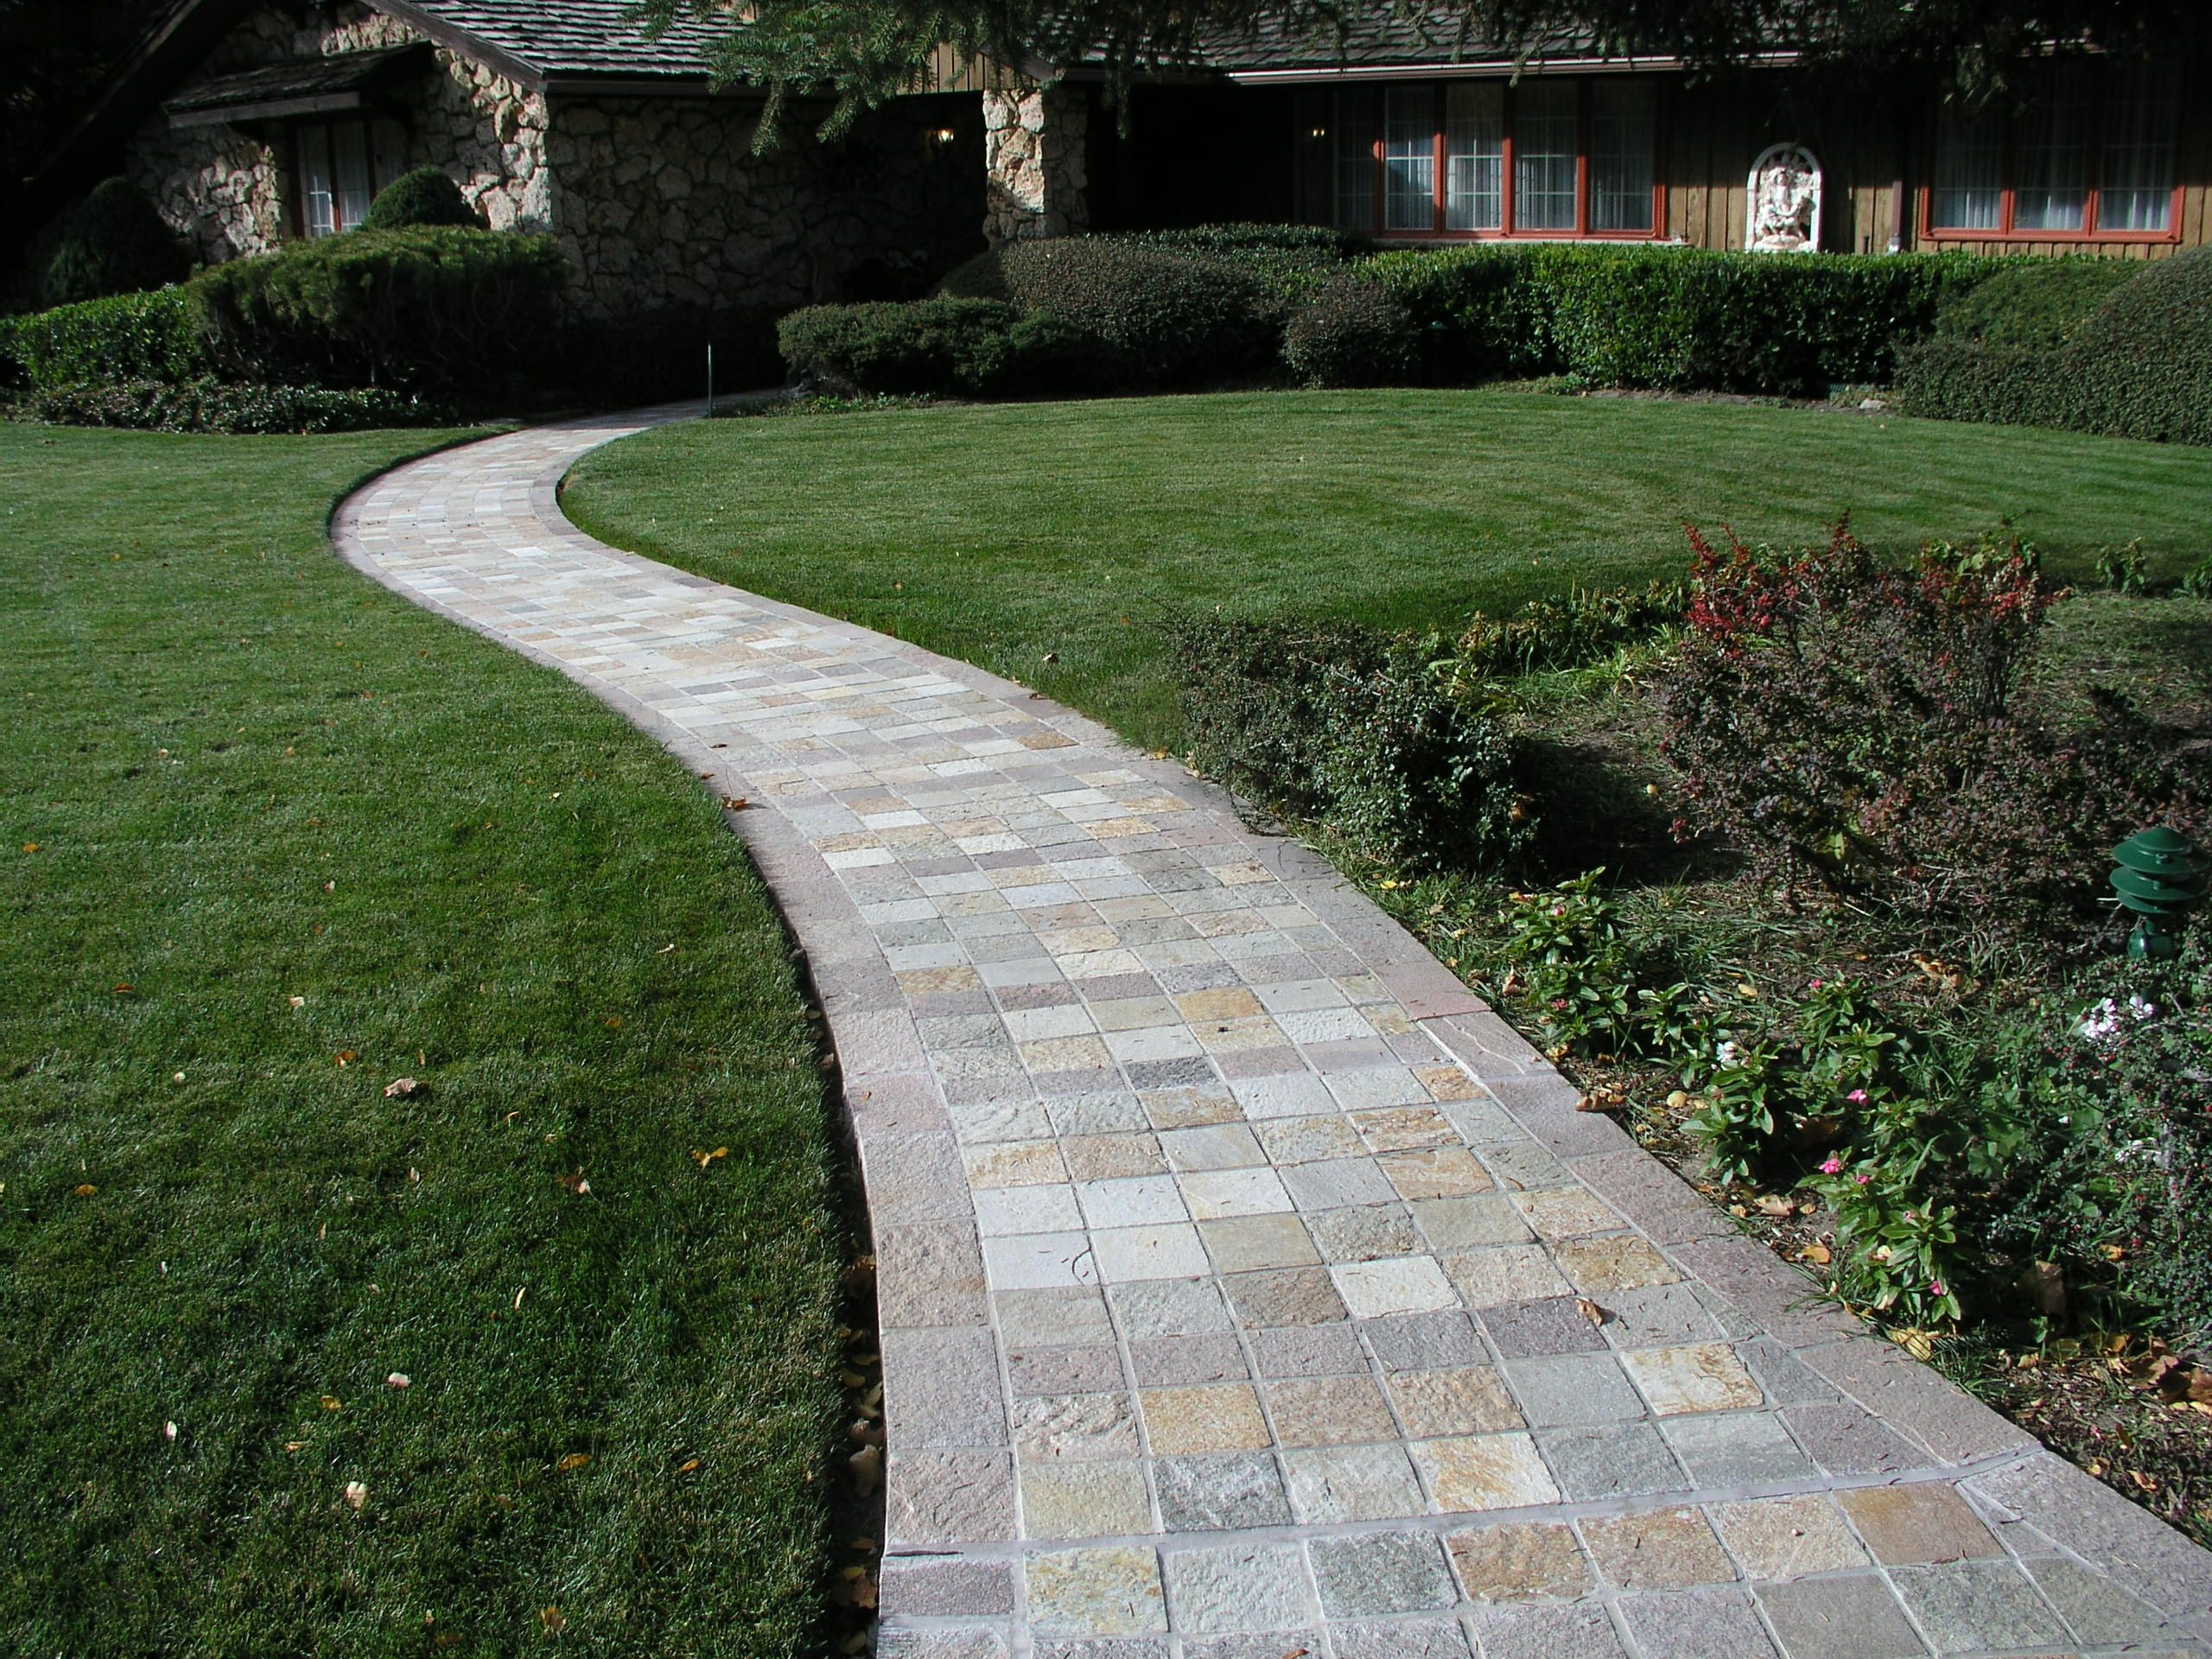 Awesome Well Made Patio Pavers Home Depot Walkway Design Garden